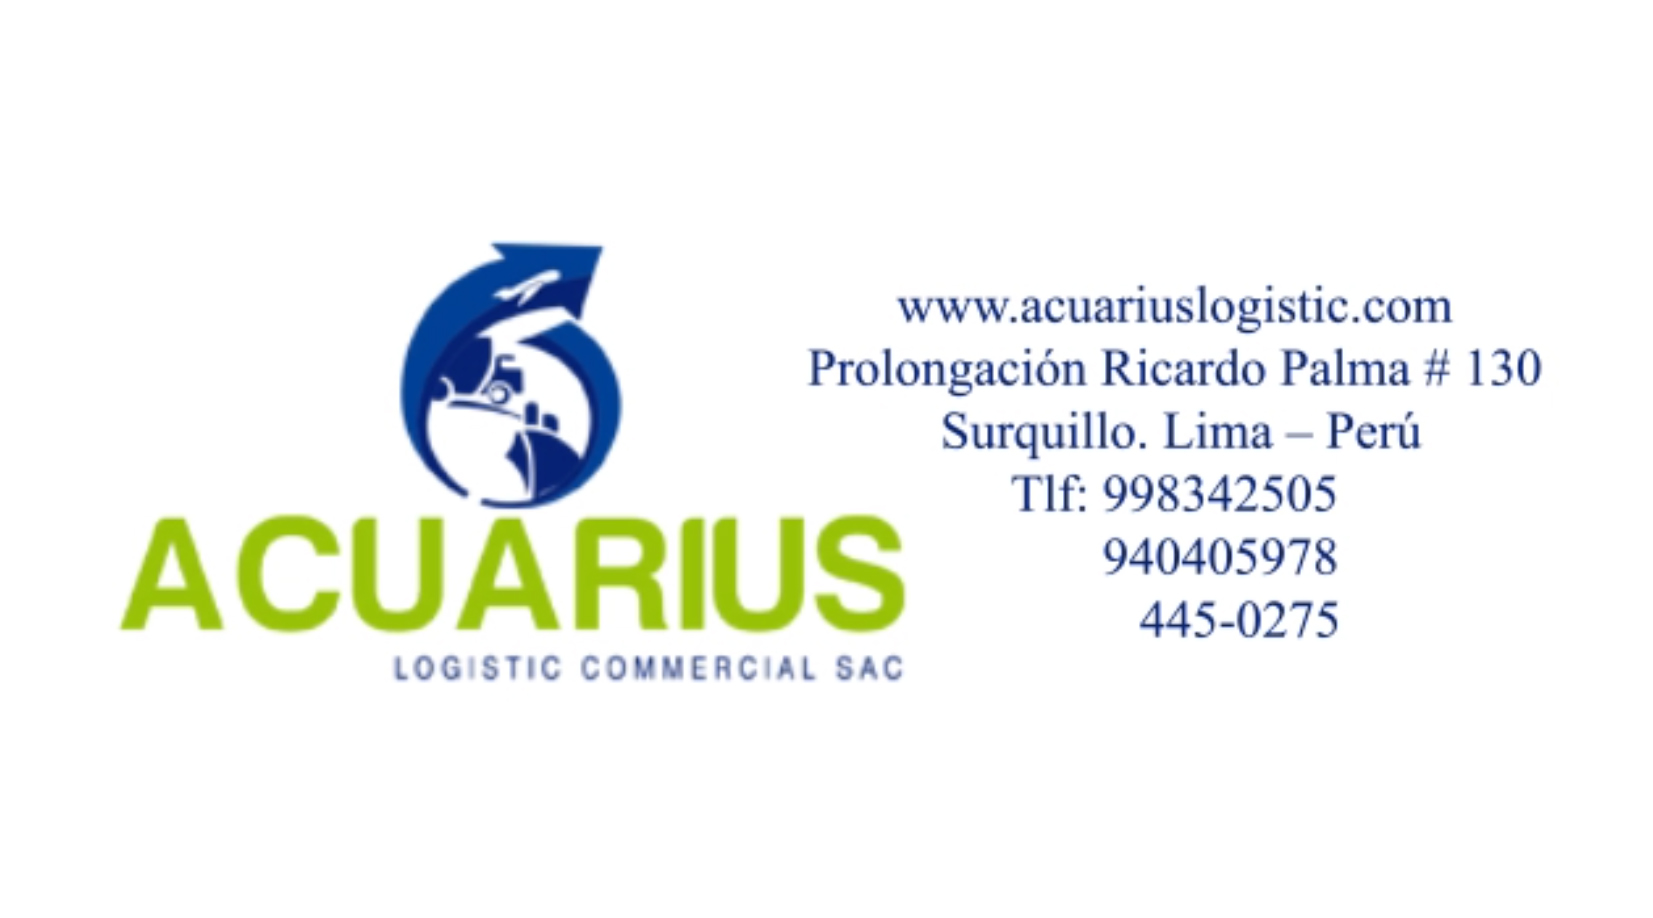 Acuarius Logistic